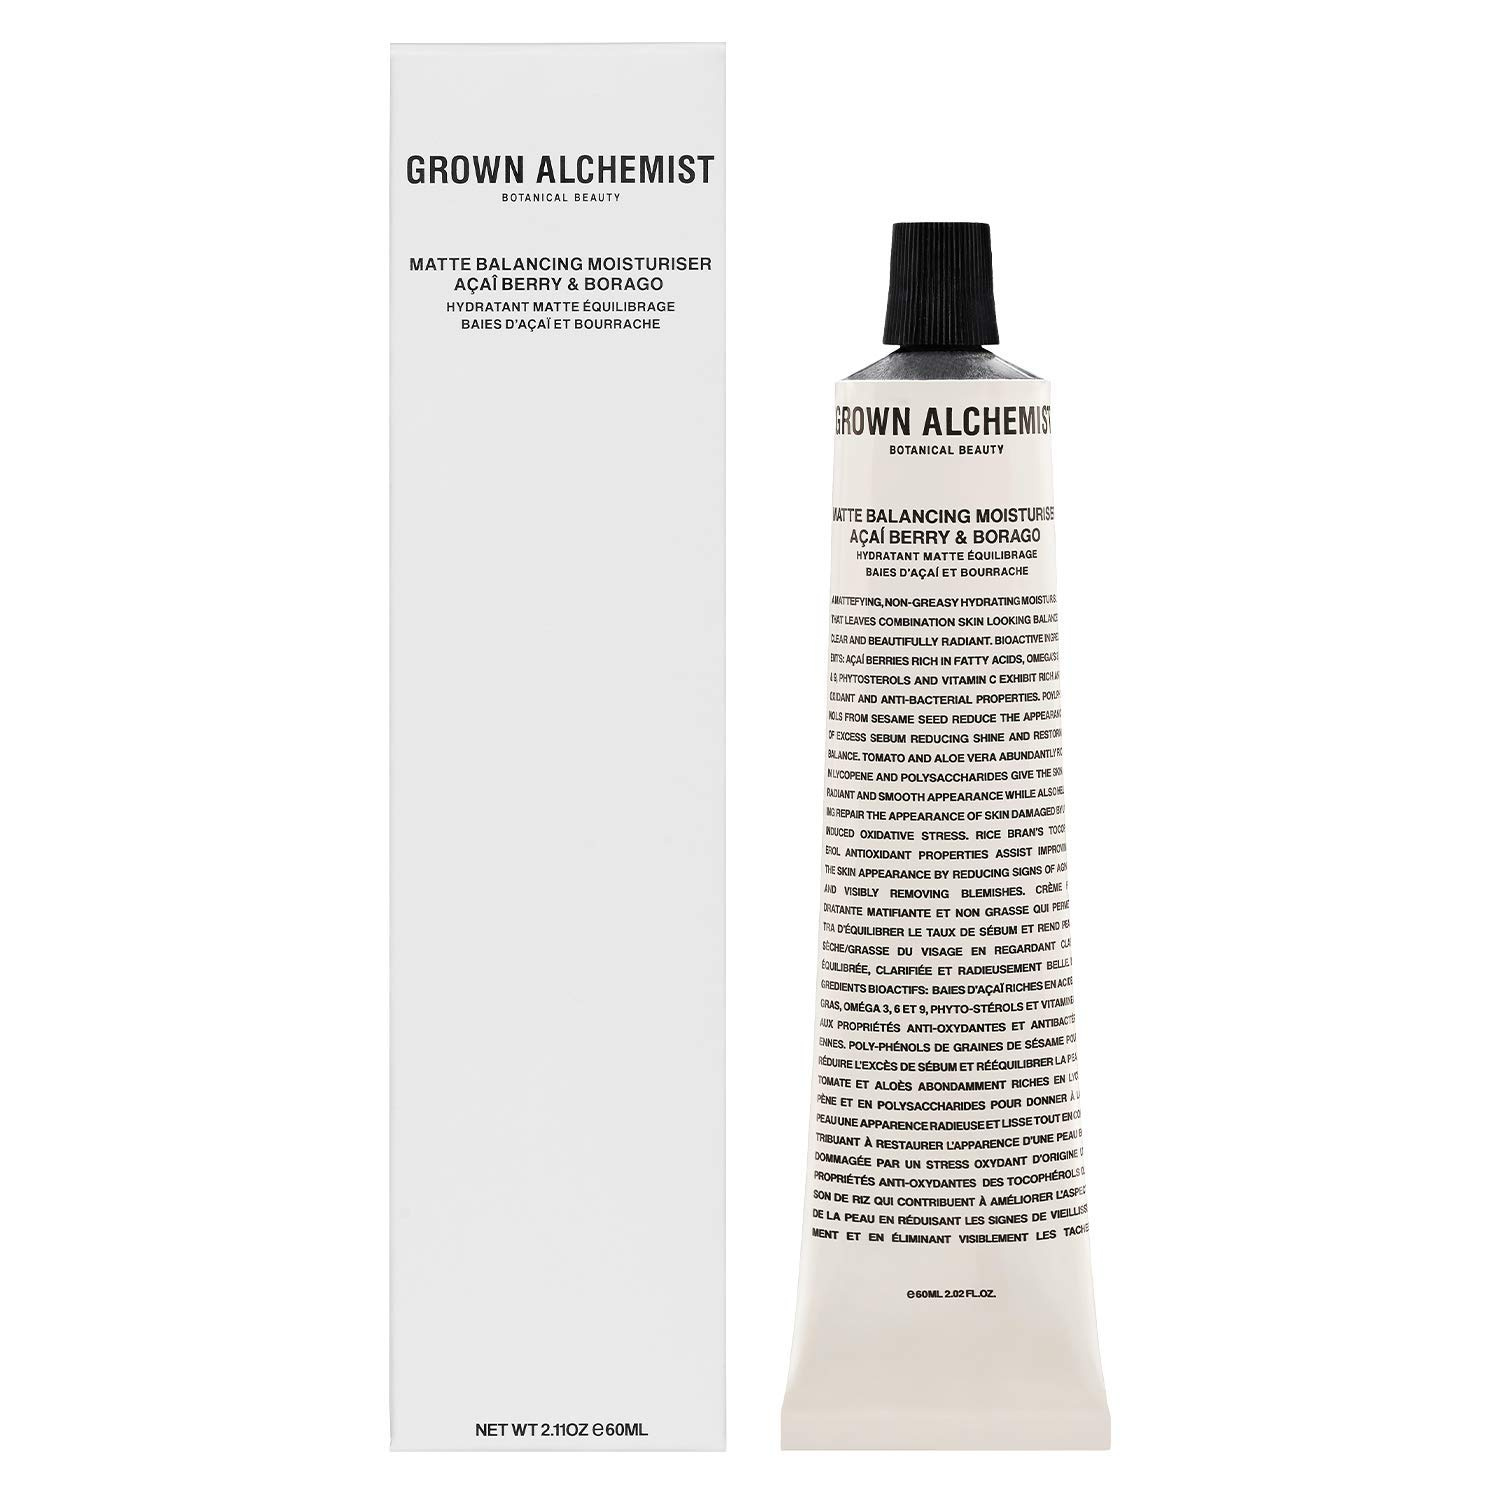 Grown Alchemist Matte Balancing Moisturizer - Acai-Berry & Borago - Made with Organic Ingredients (60ml / 2.11oz)